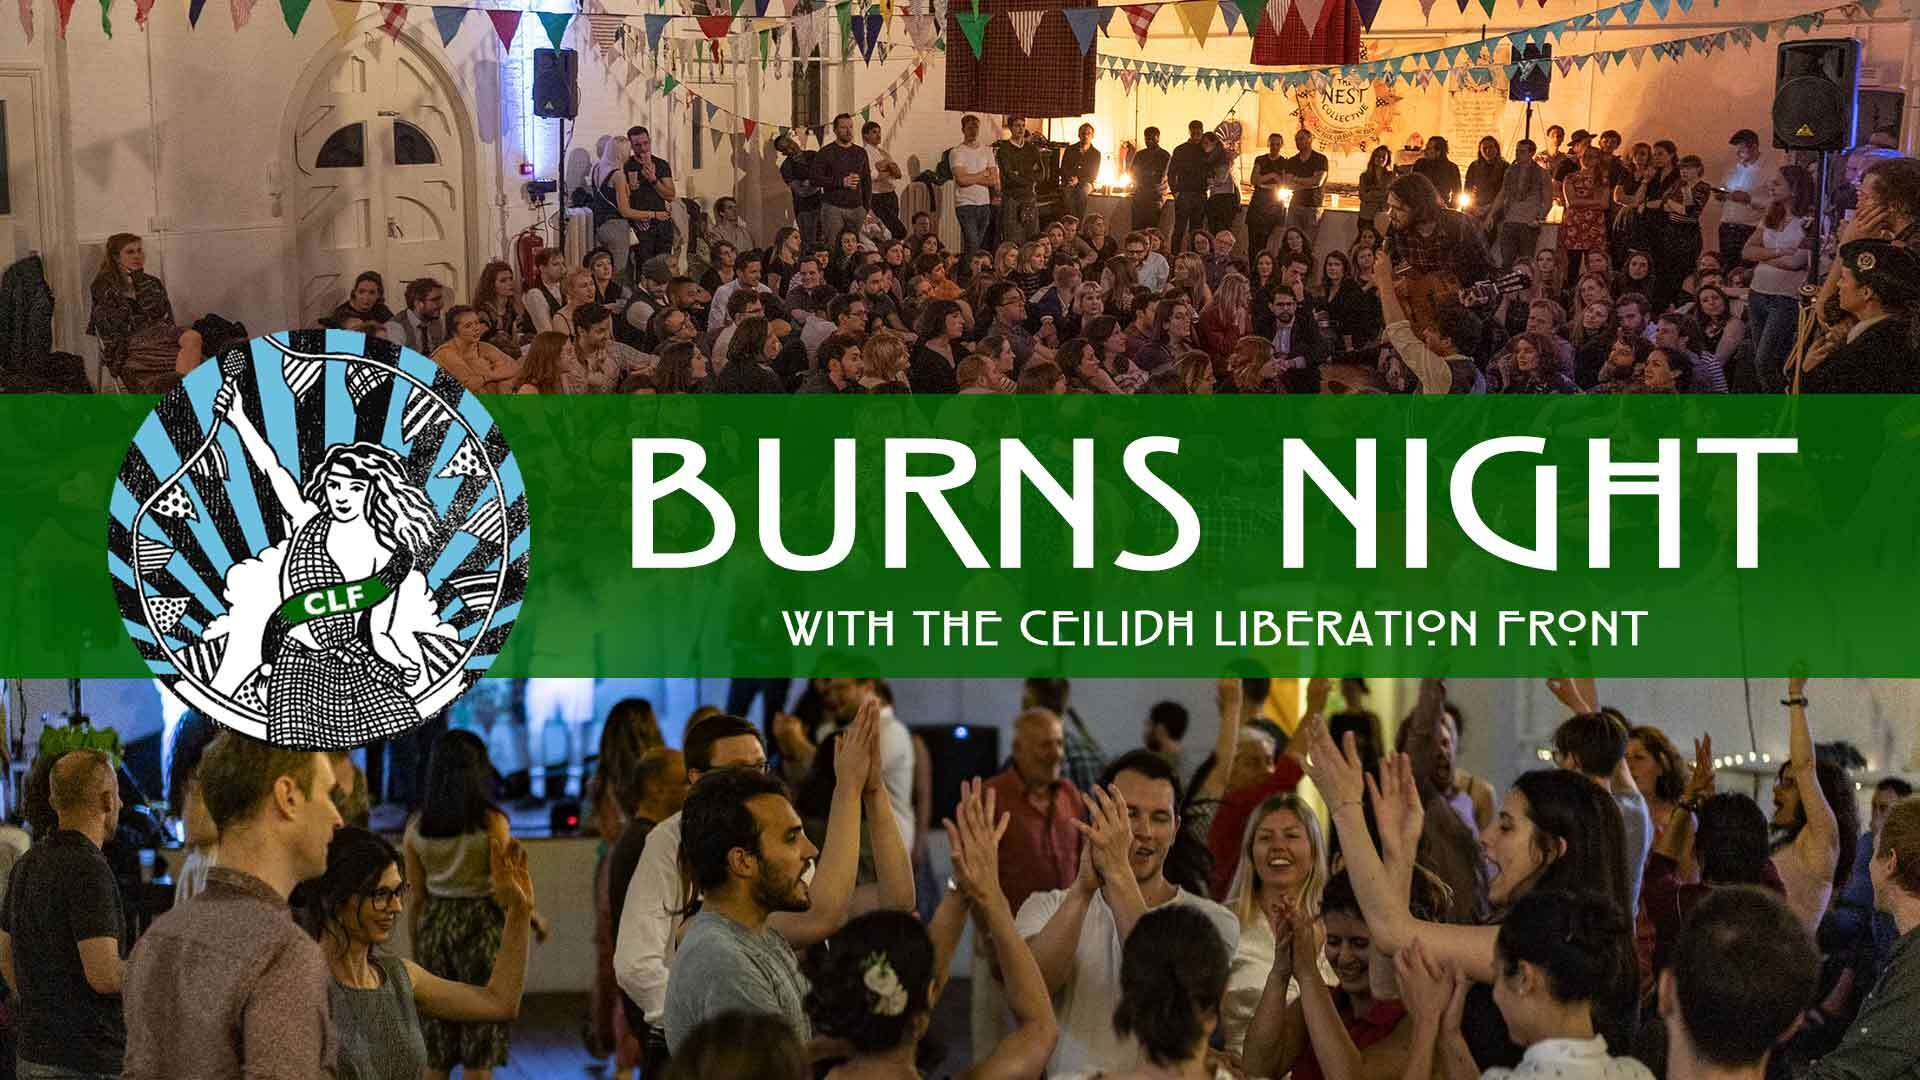 Burns Night Party in London